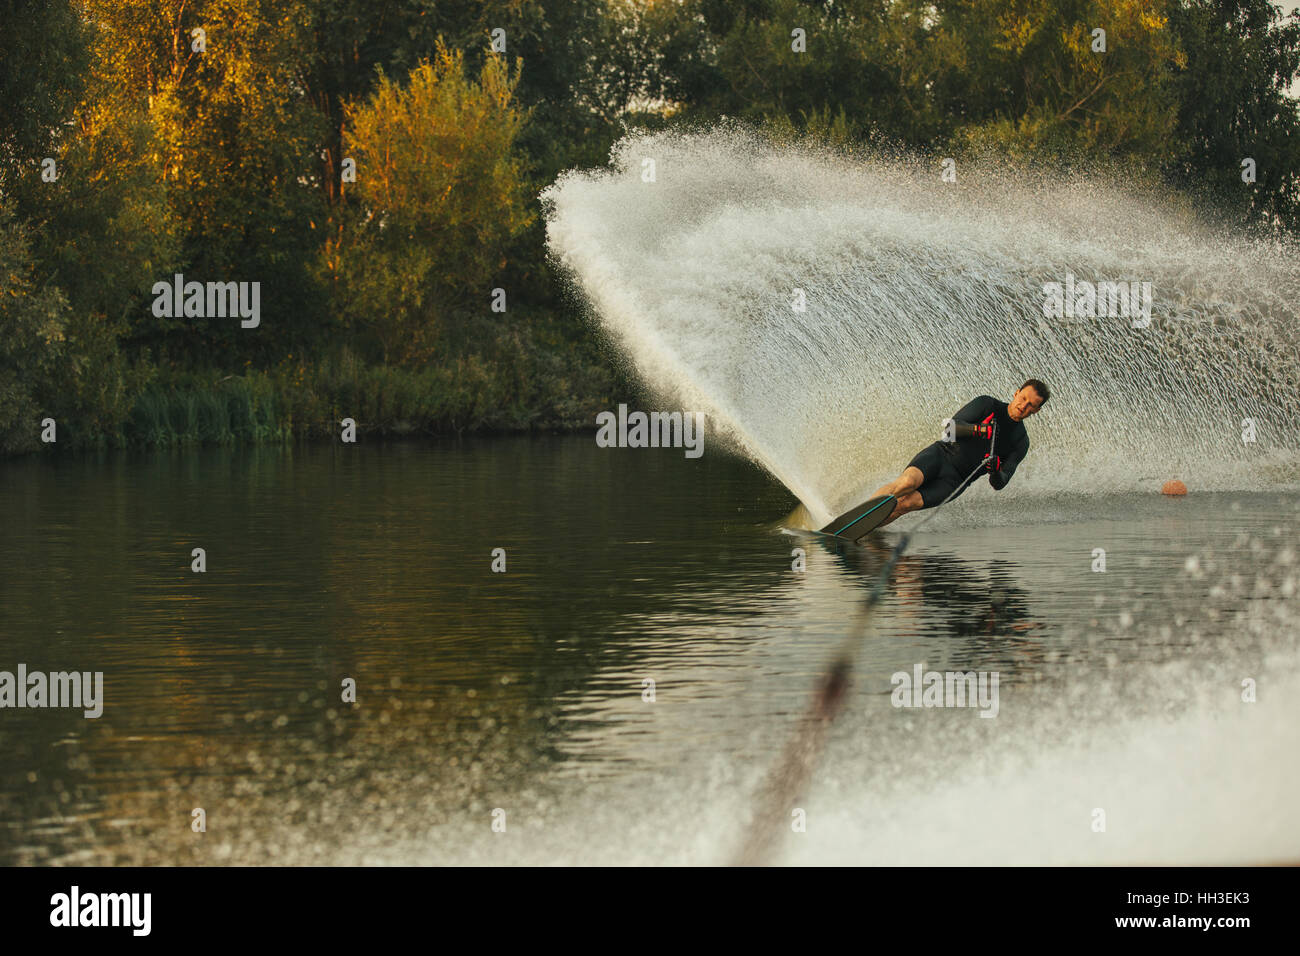 Wakeboarder skiing on lake with splash of water. Man practicing wakeboarding stunts. - Stock Image